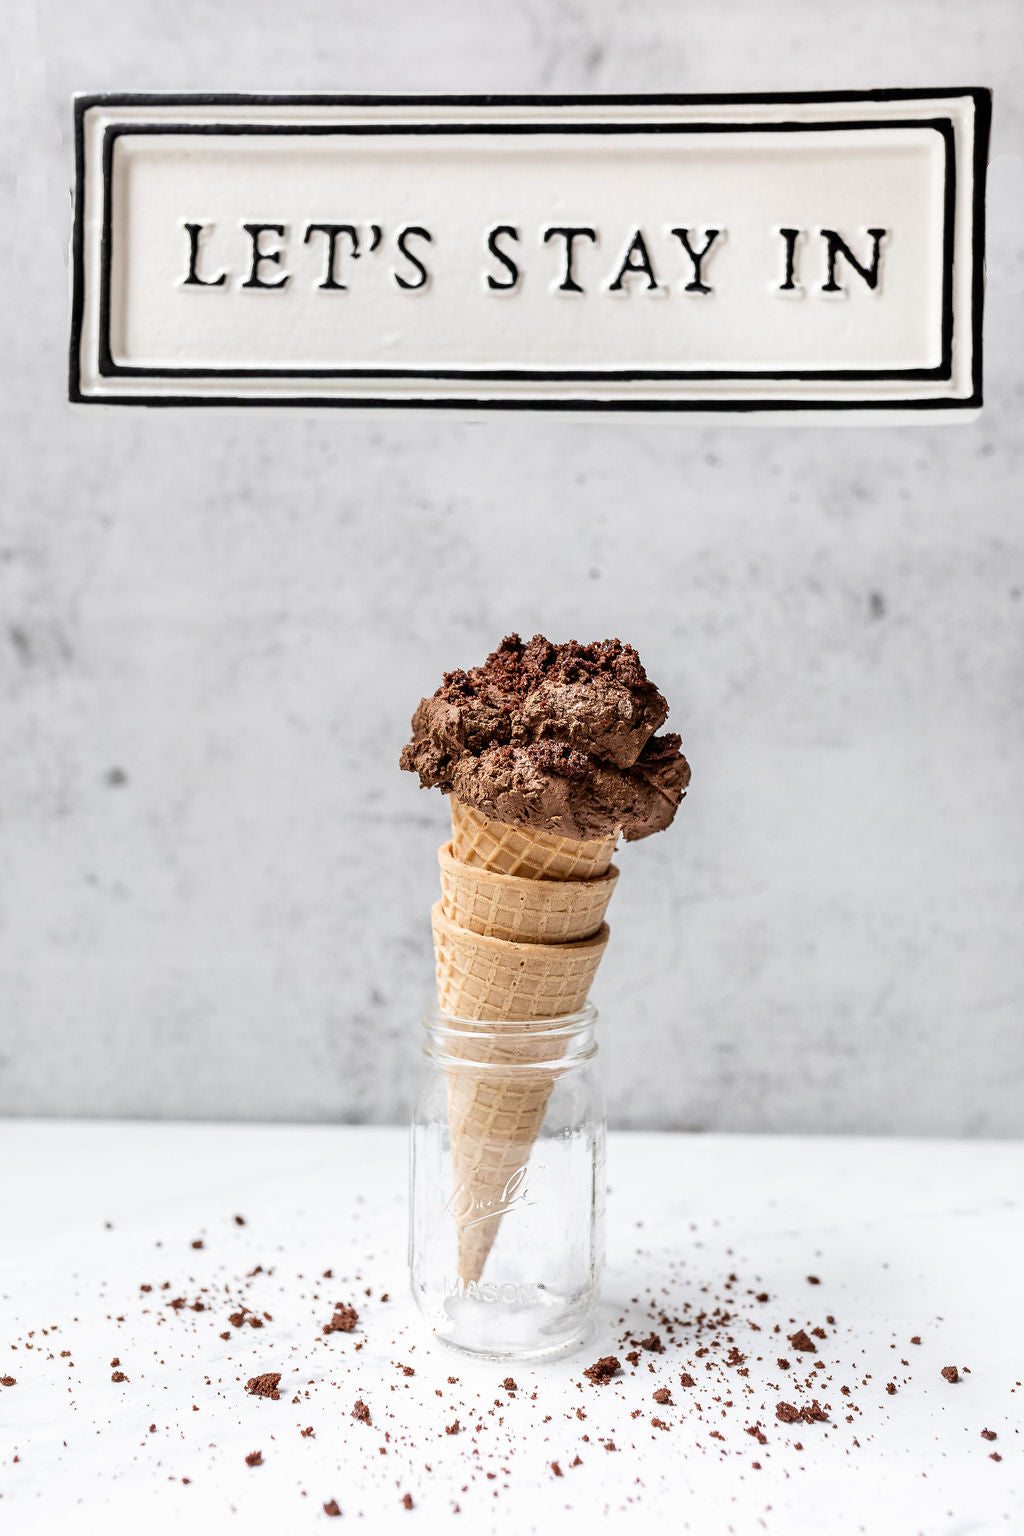 Let's stay in with ice cream